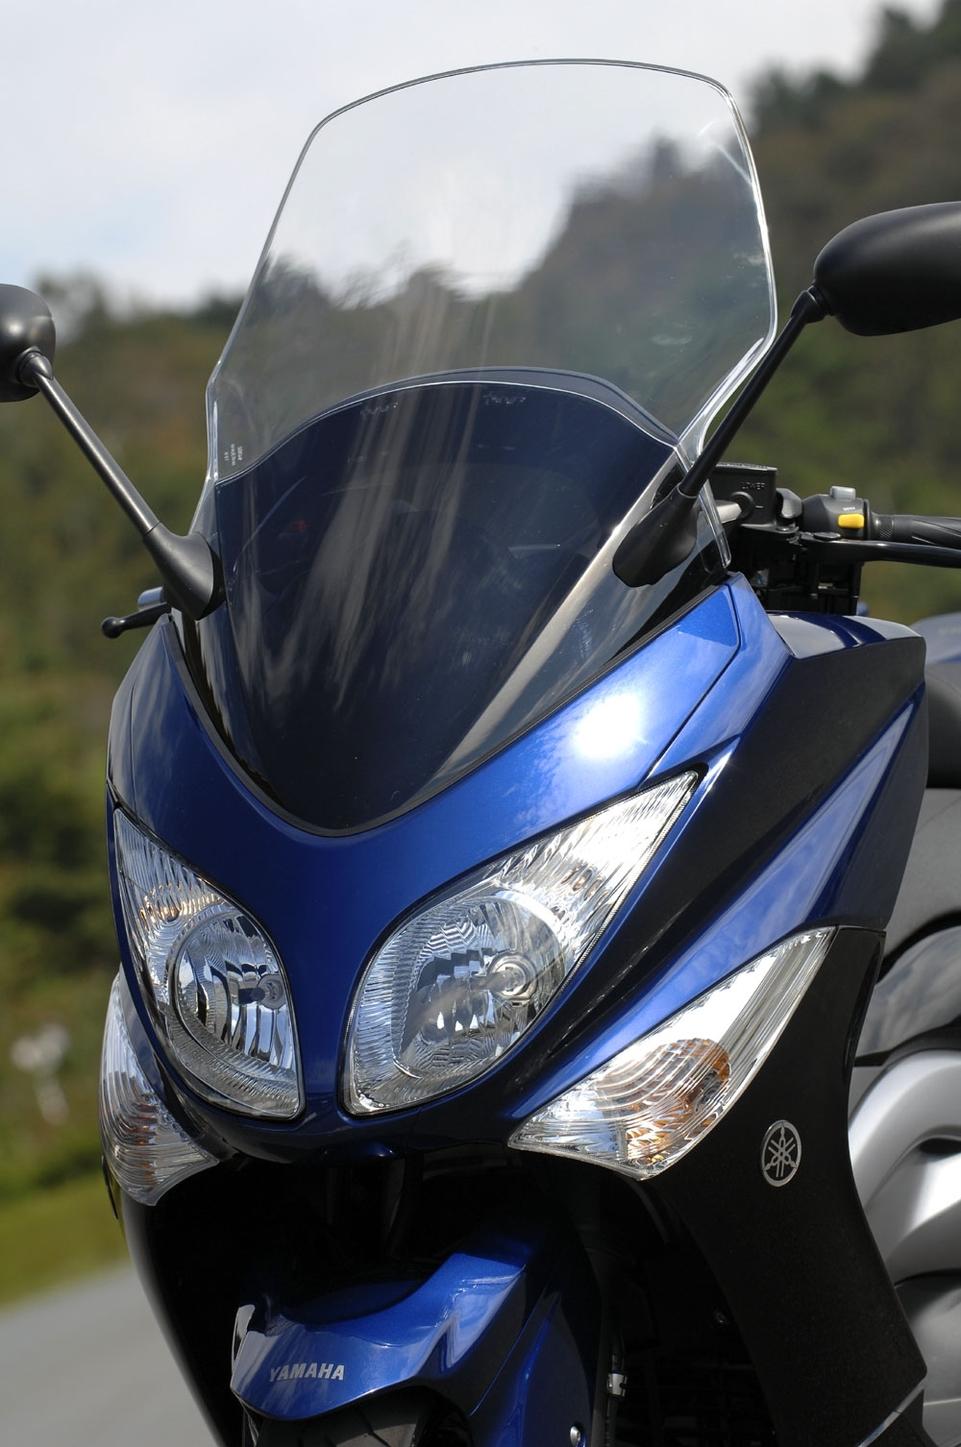 Yamaha : T-Max 500 version 2008, de plus près.